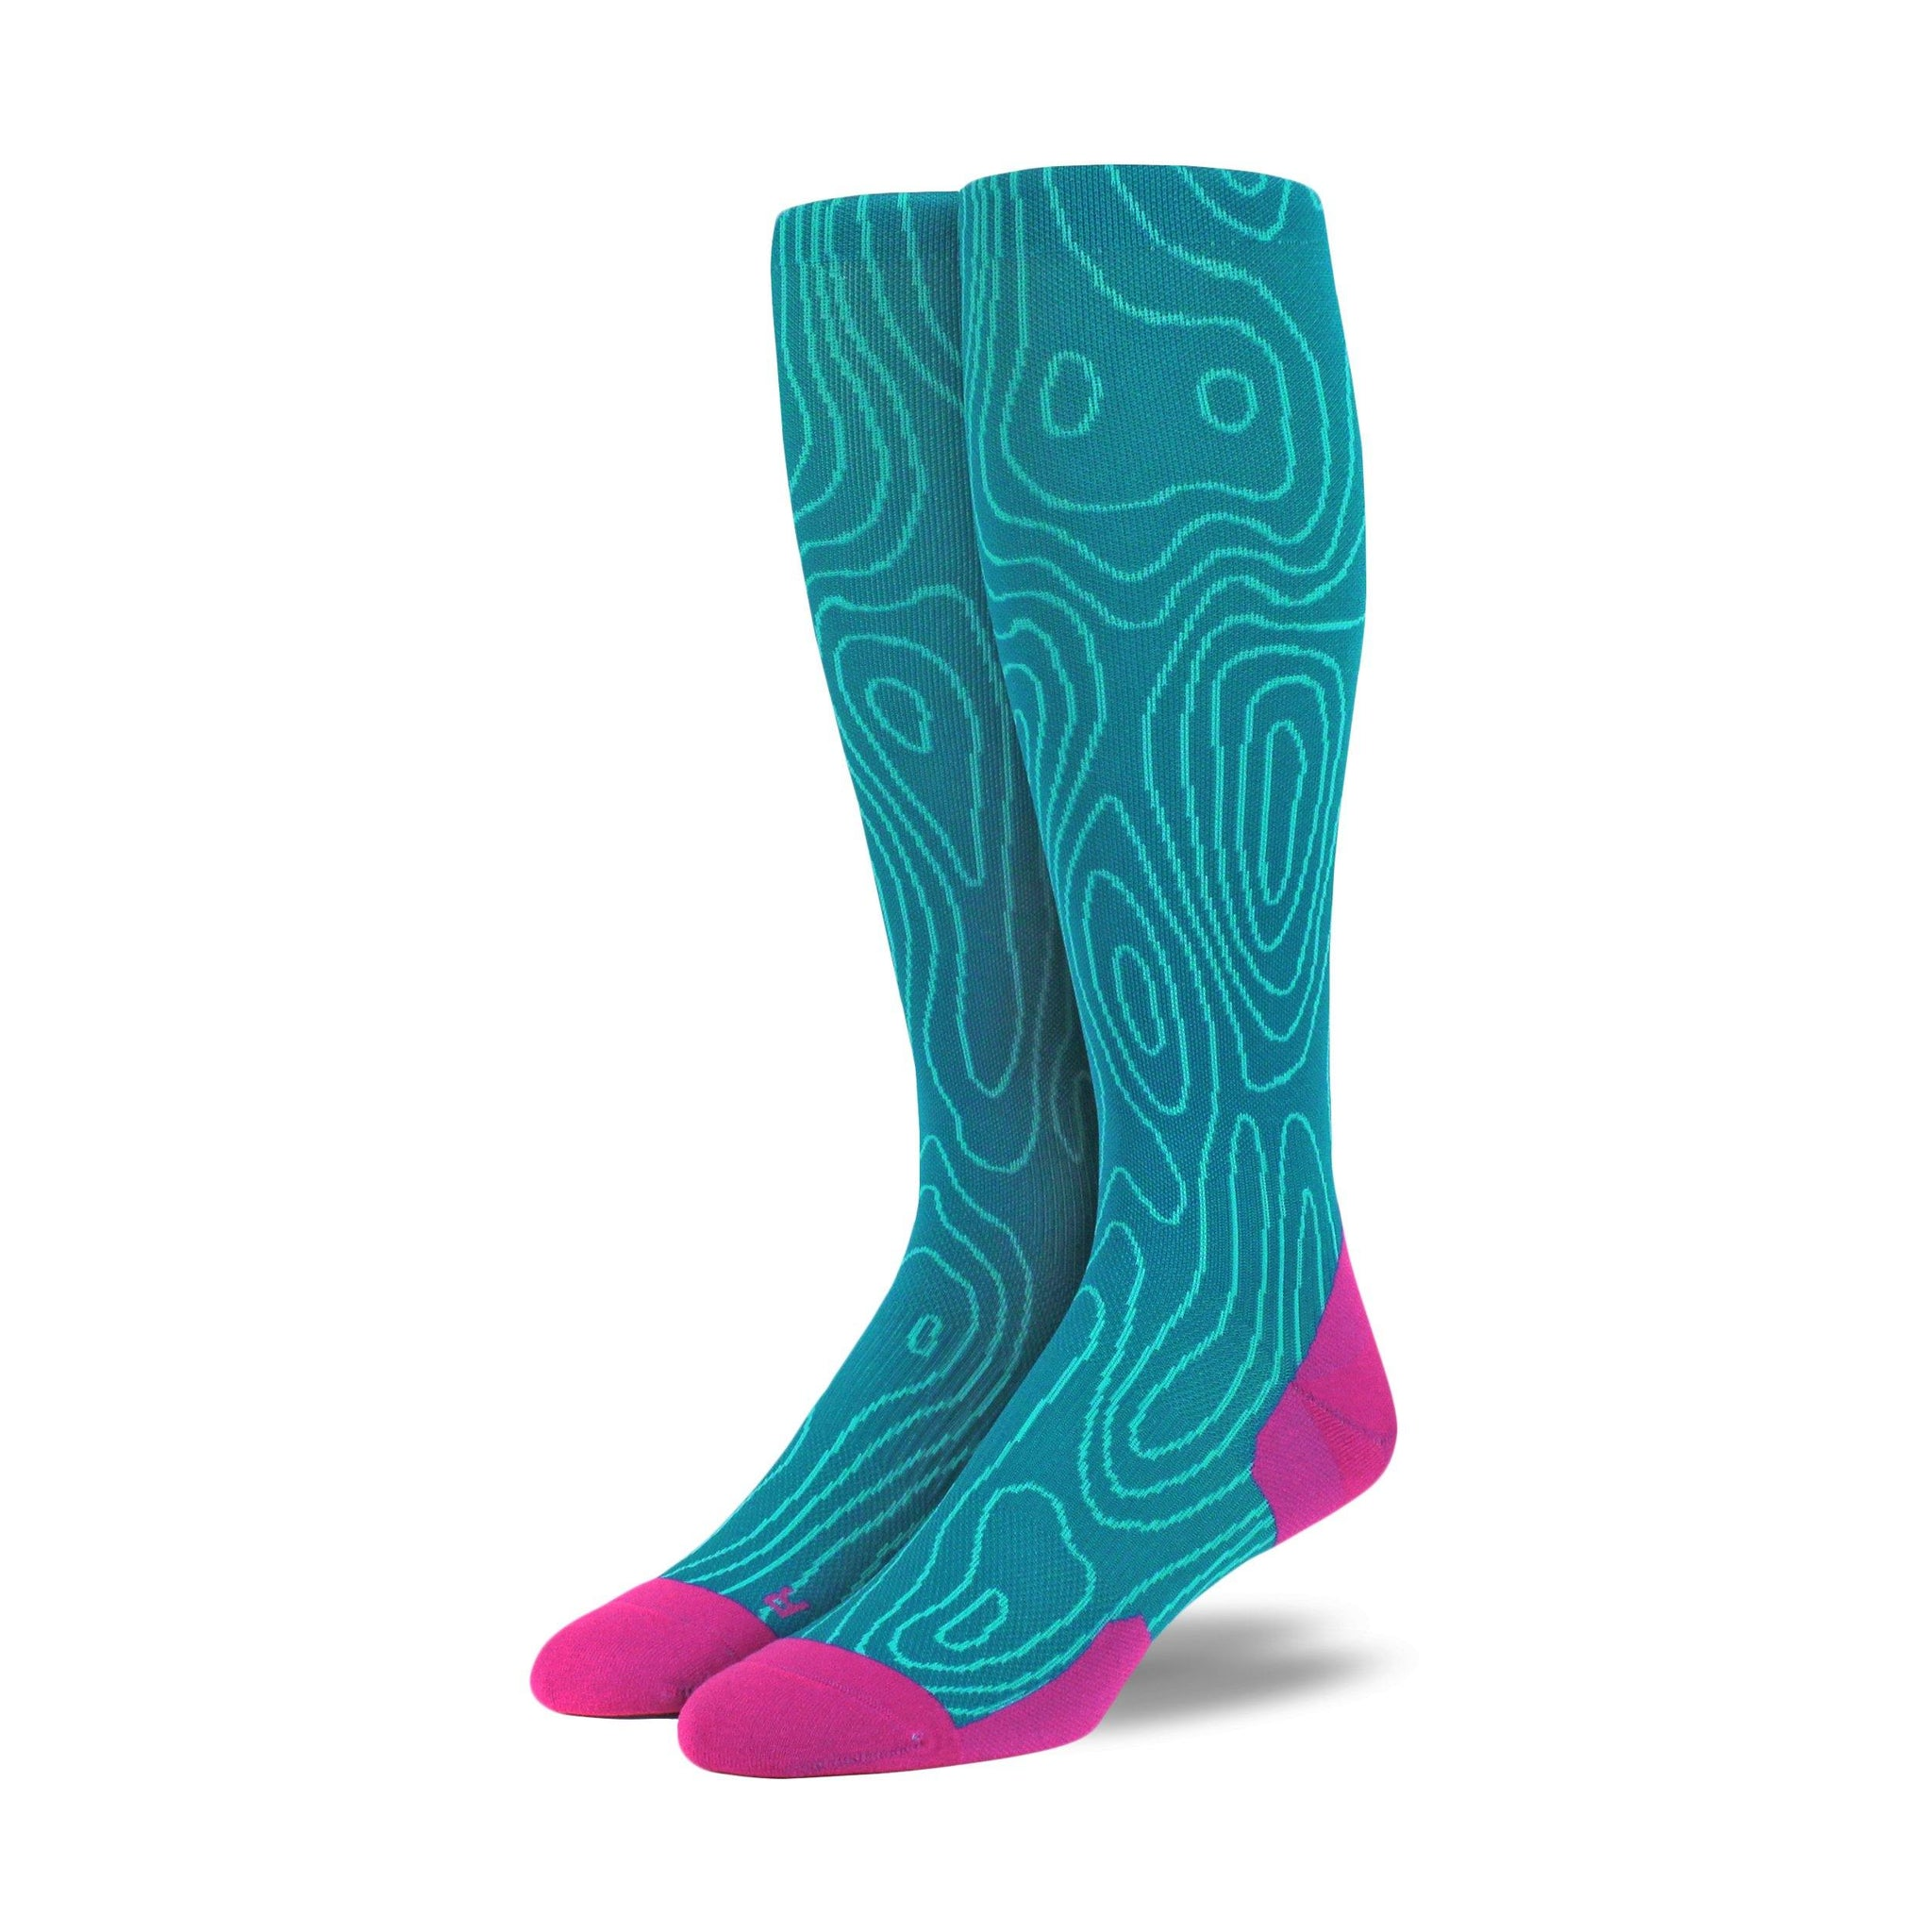 Topo Run OTC - Graduated Compression Socks